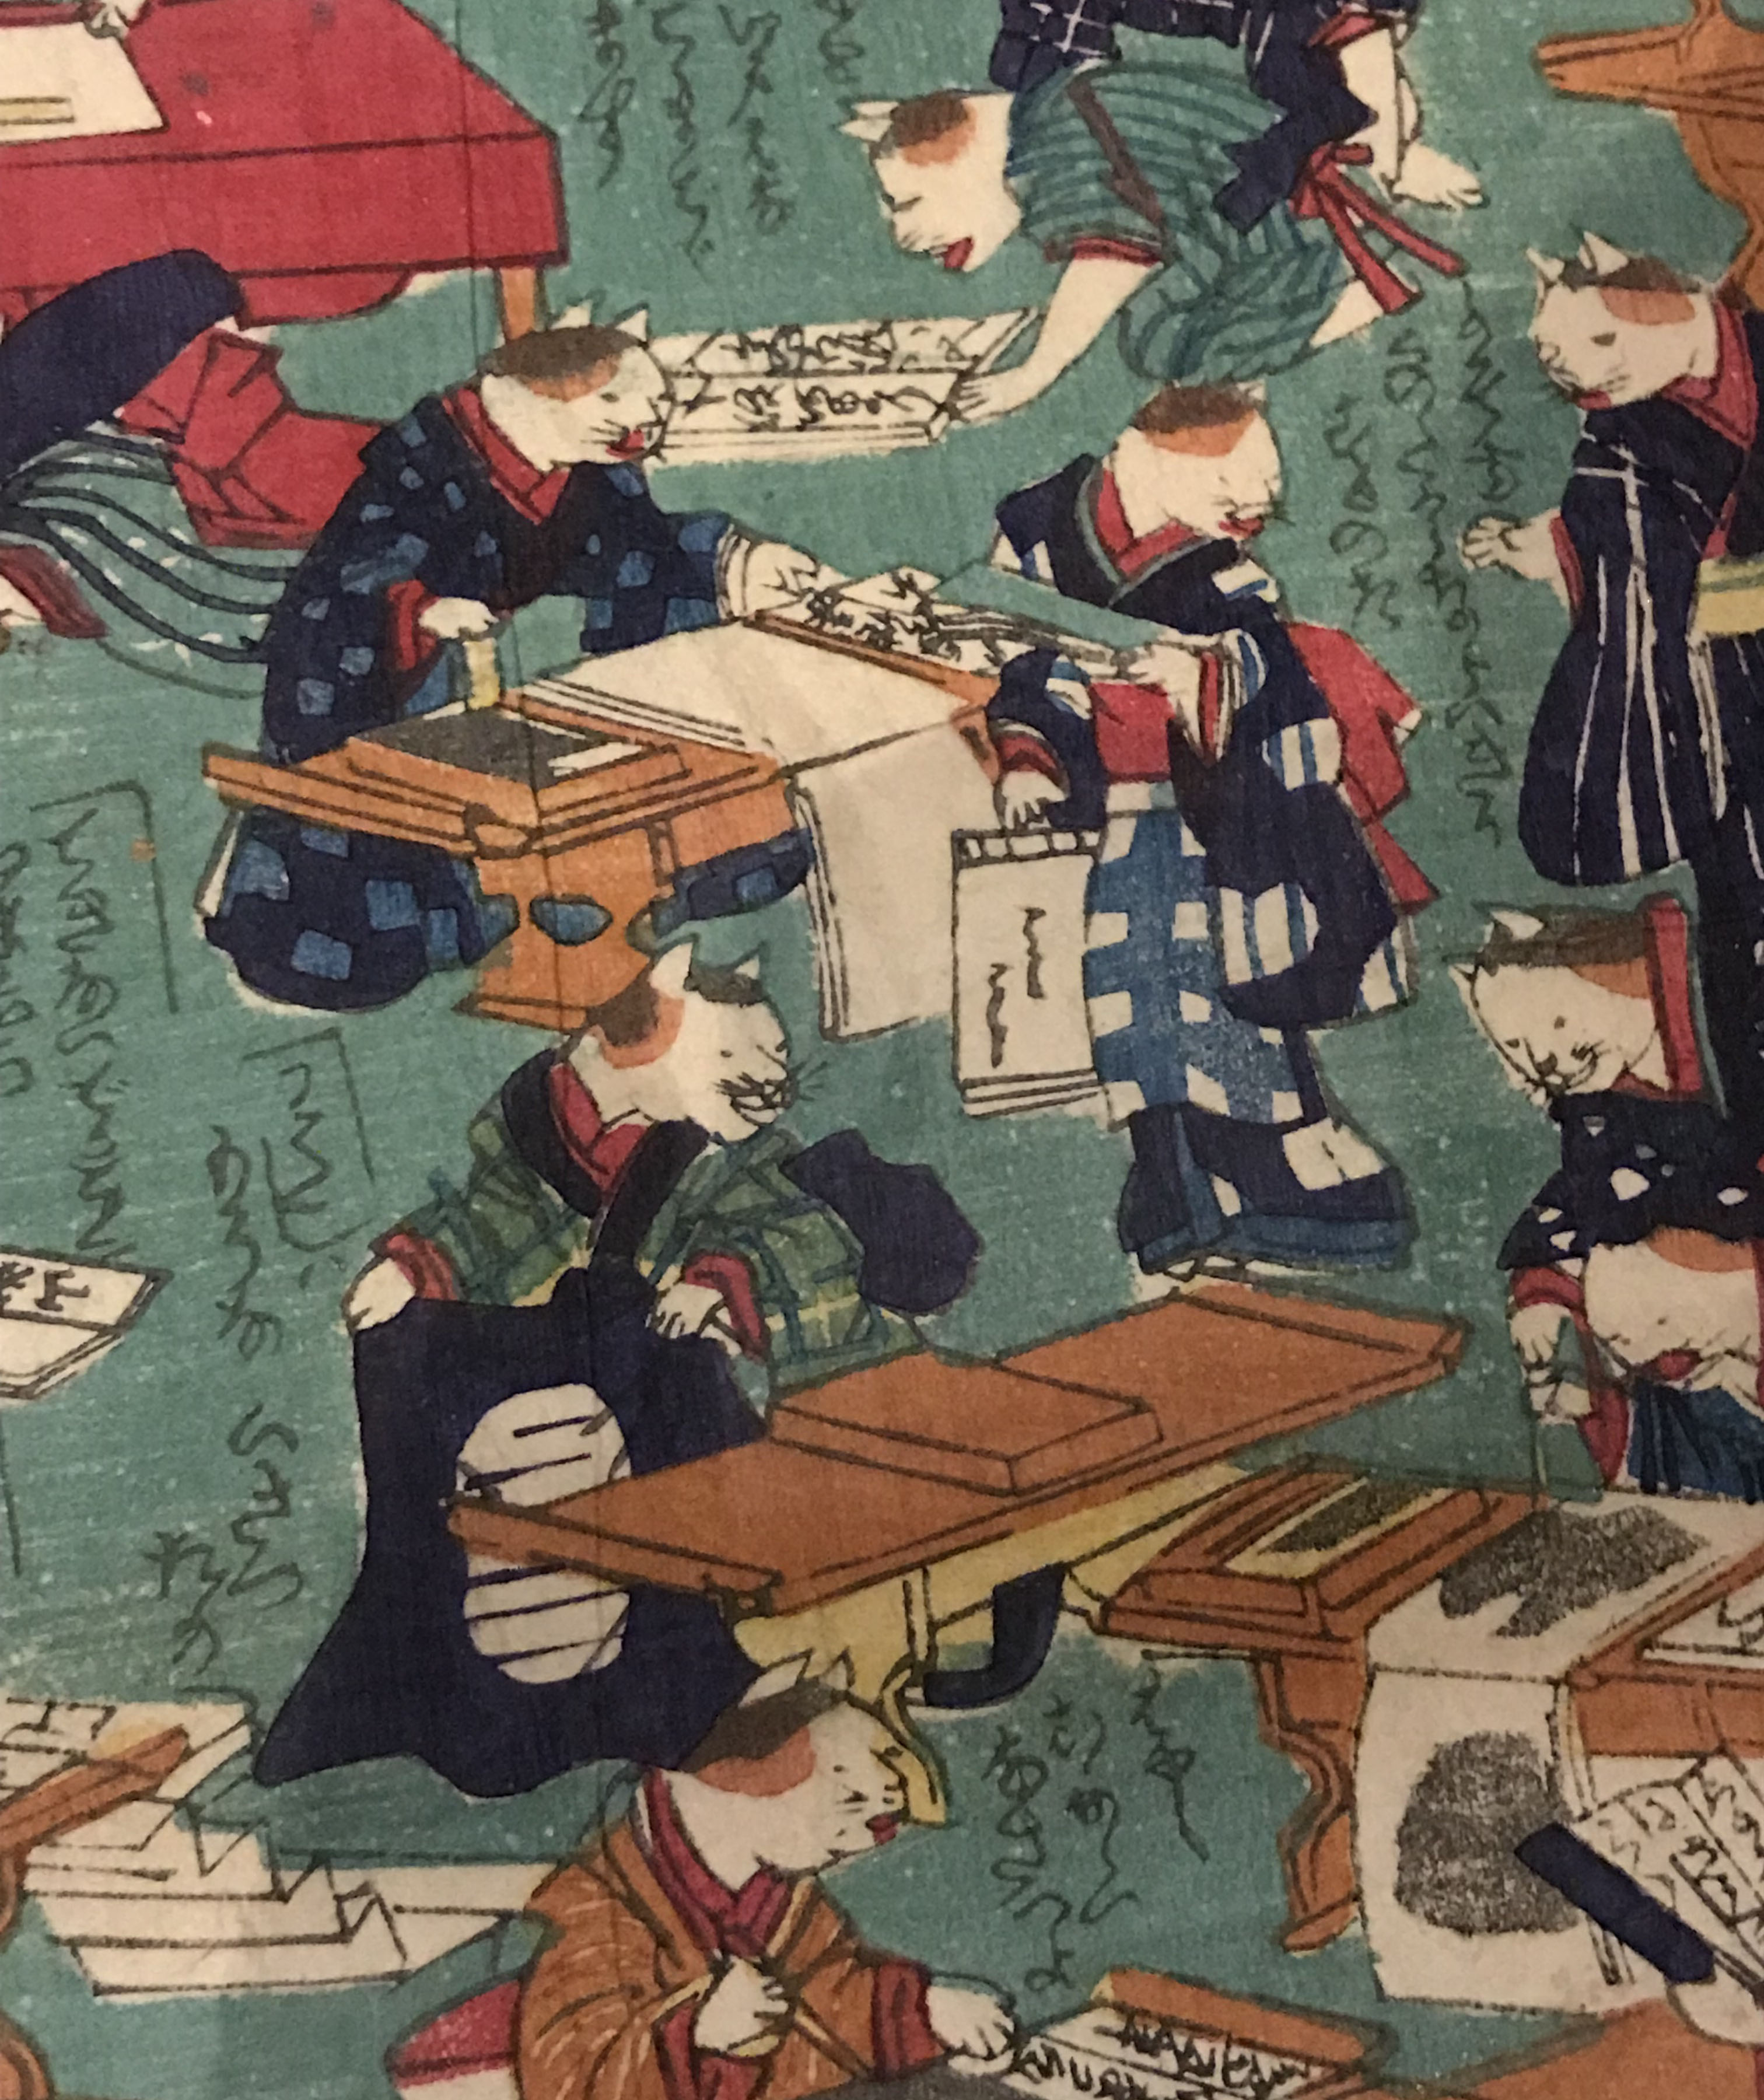 This particular print depicts a busy classroom scene with cats practicing calligraphy.